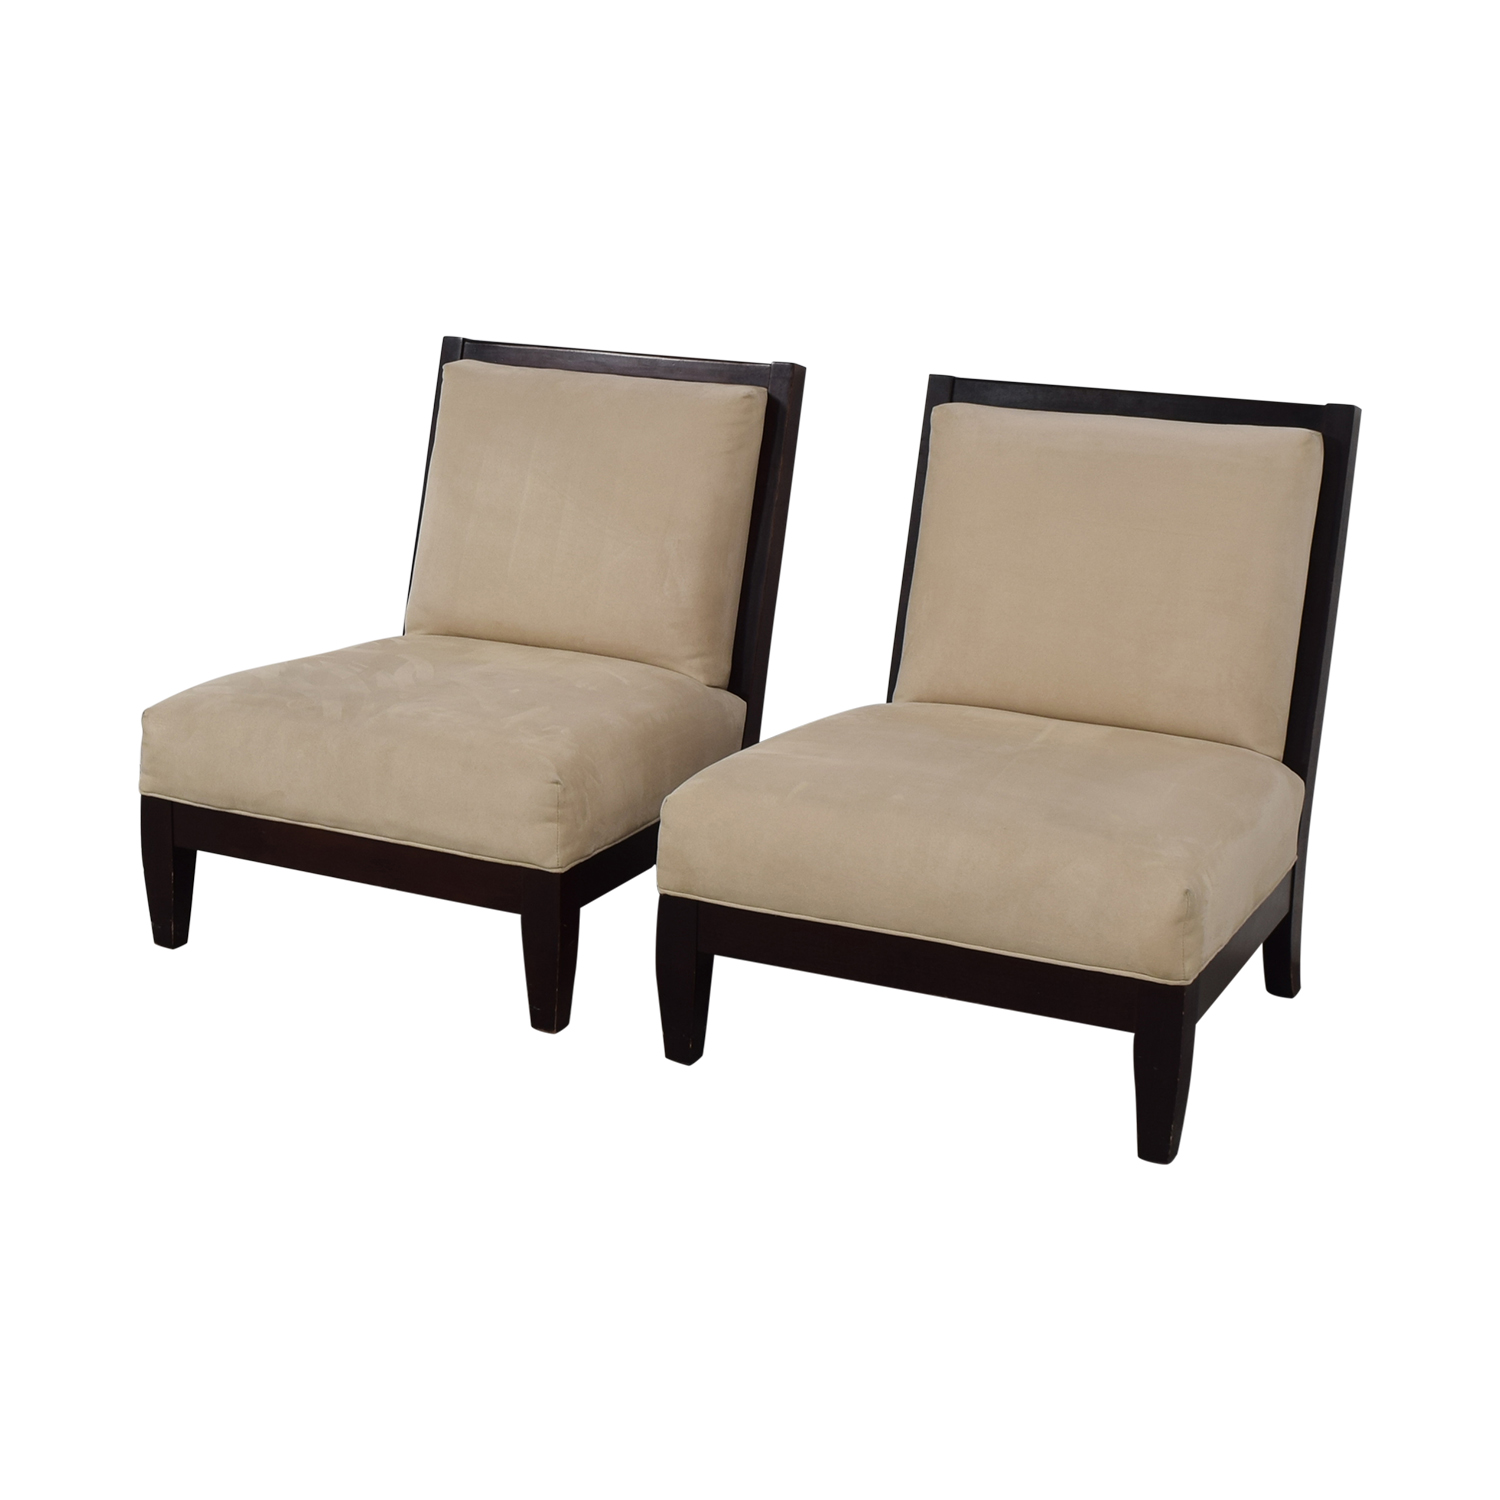 Room & Board Room & Board Beige and Black Accent Chairs nyc